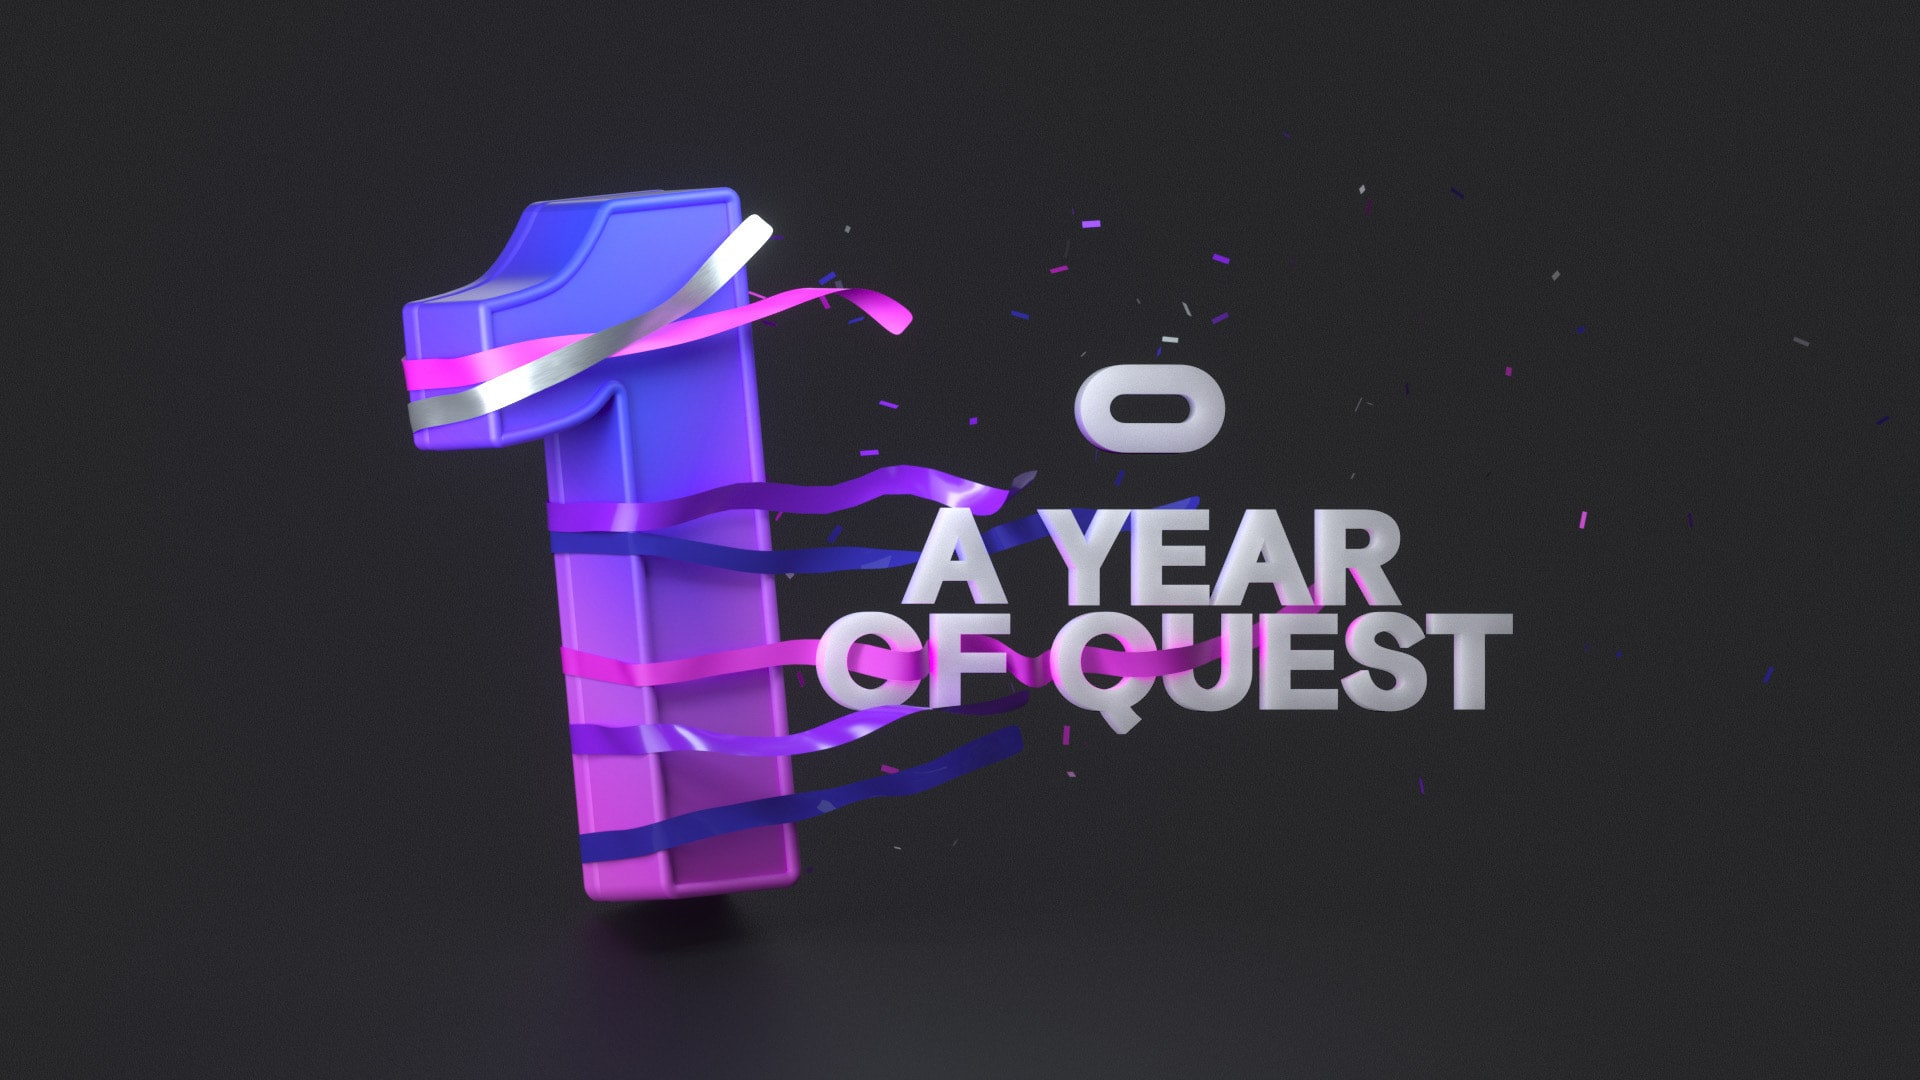 Oculus Qust one year anniversary